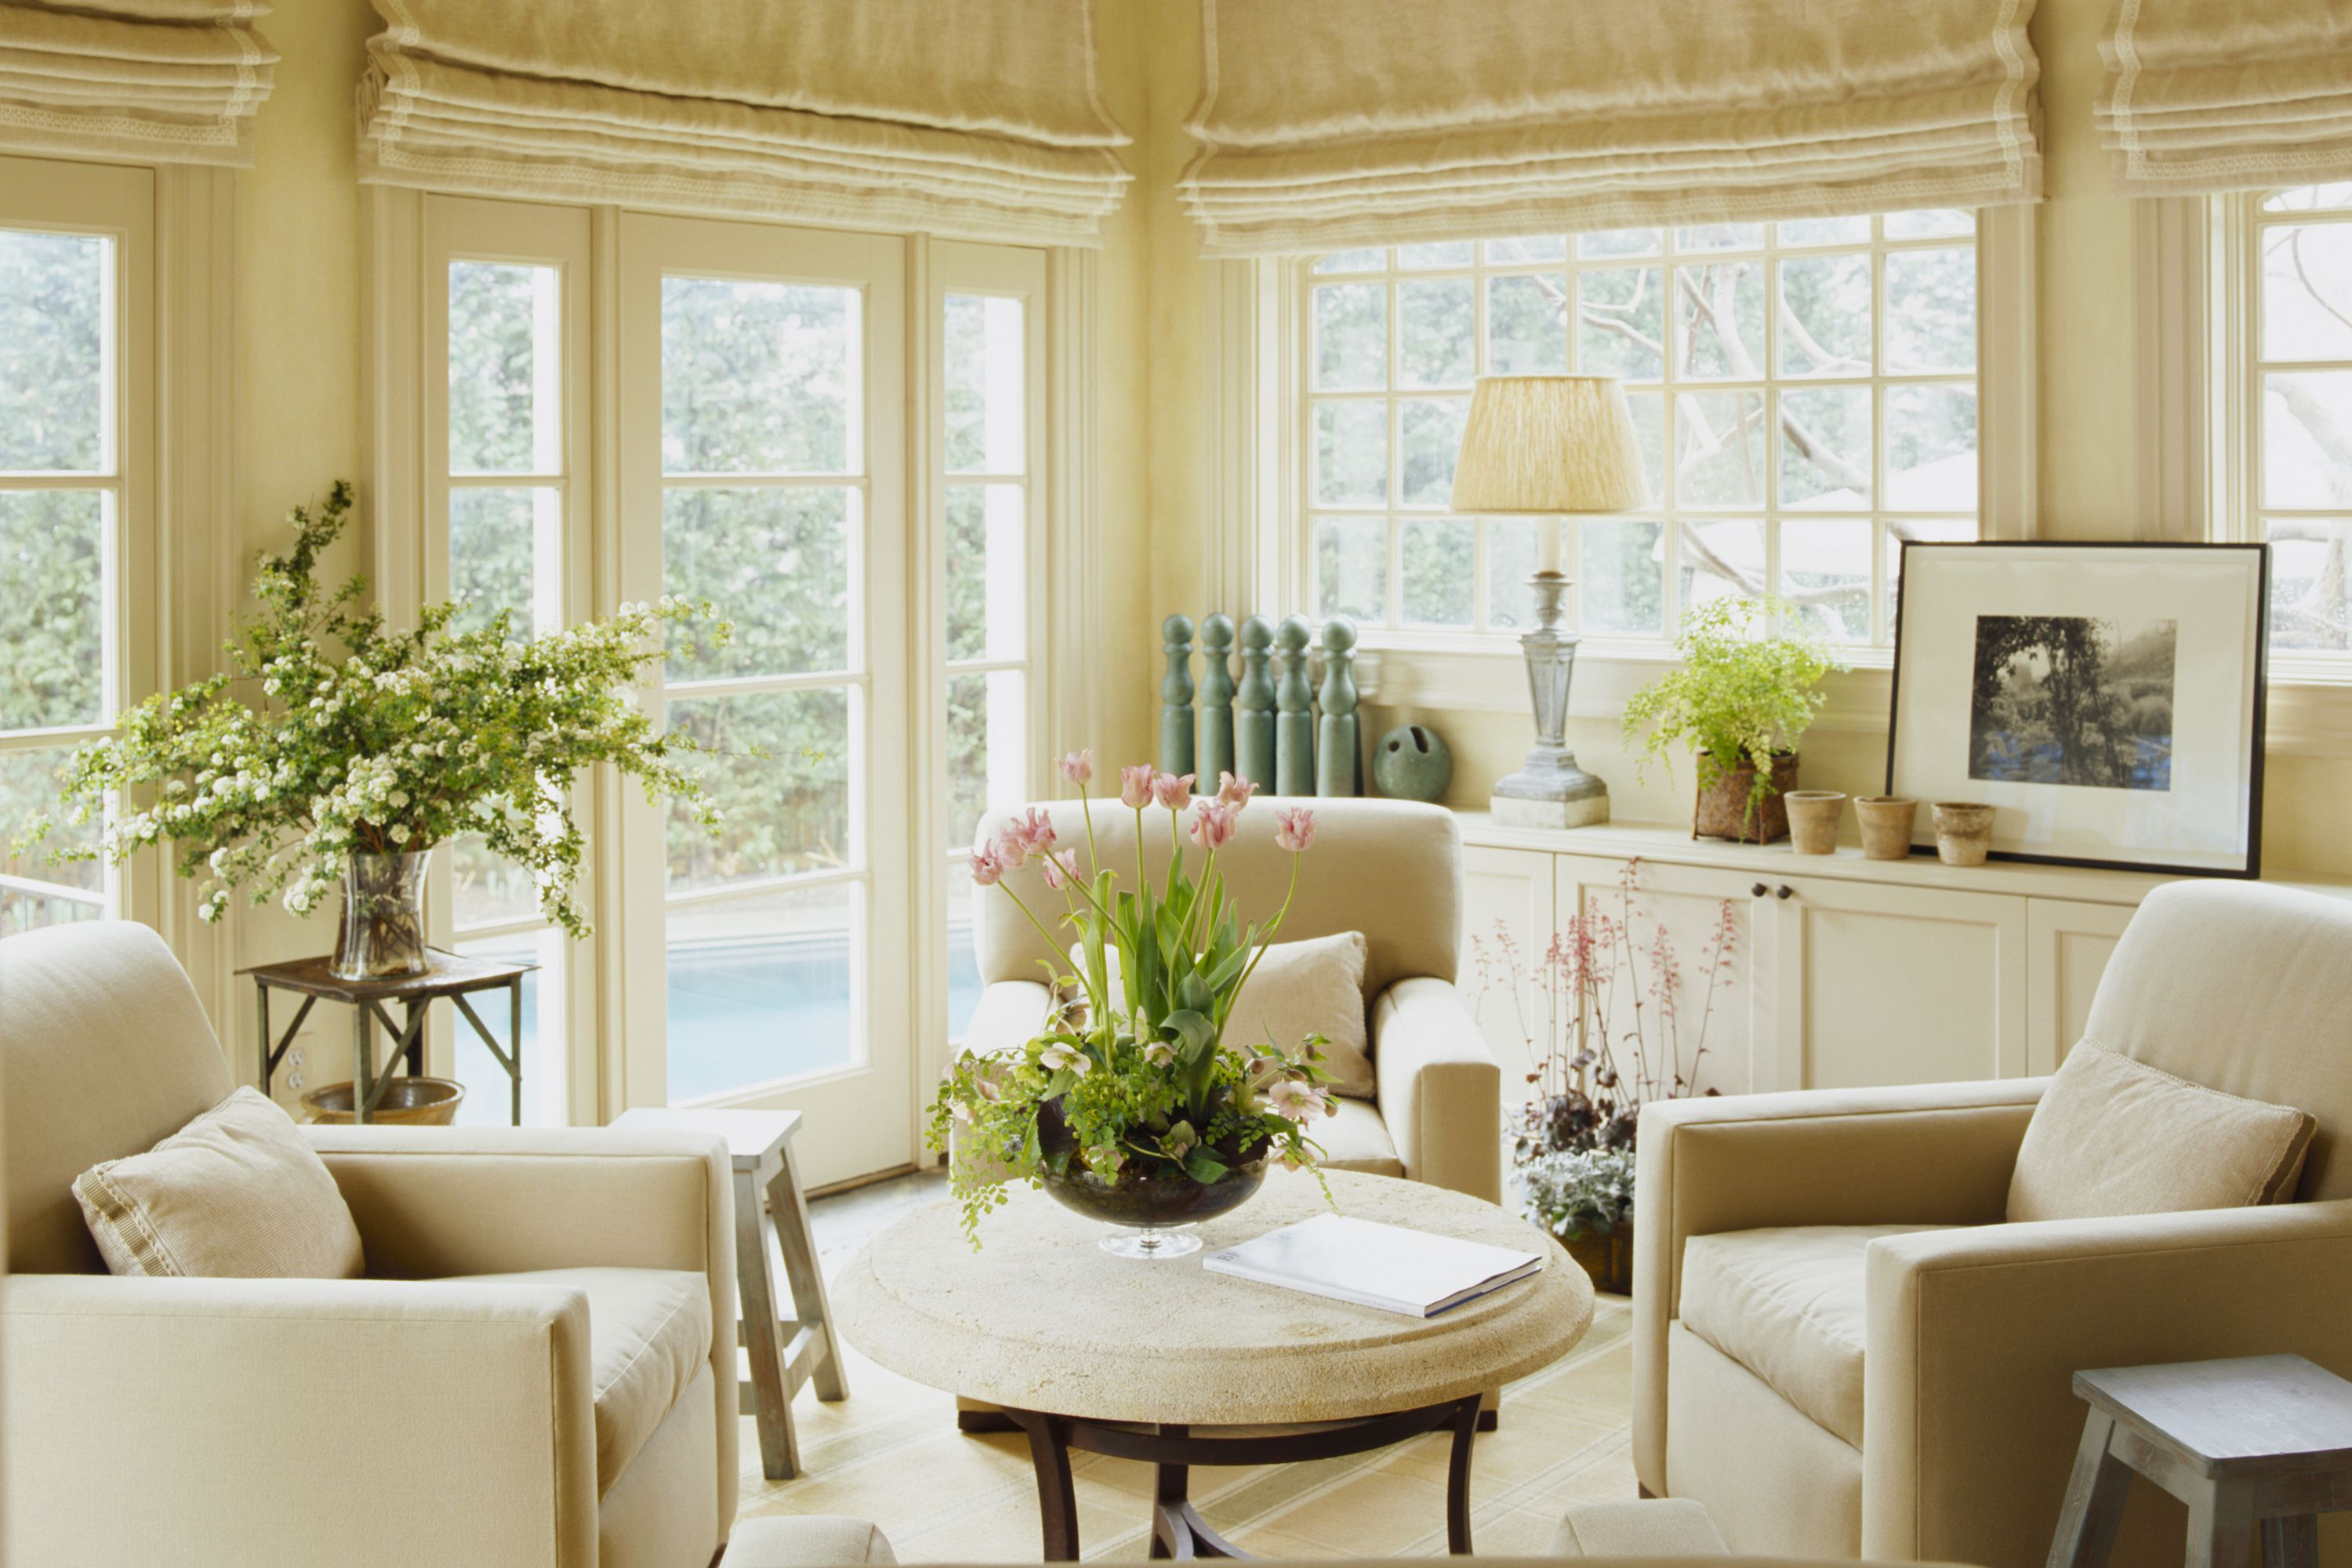 cream colored sunroom with roll down drapes built in cabinets cream plush chairs